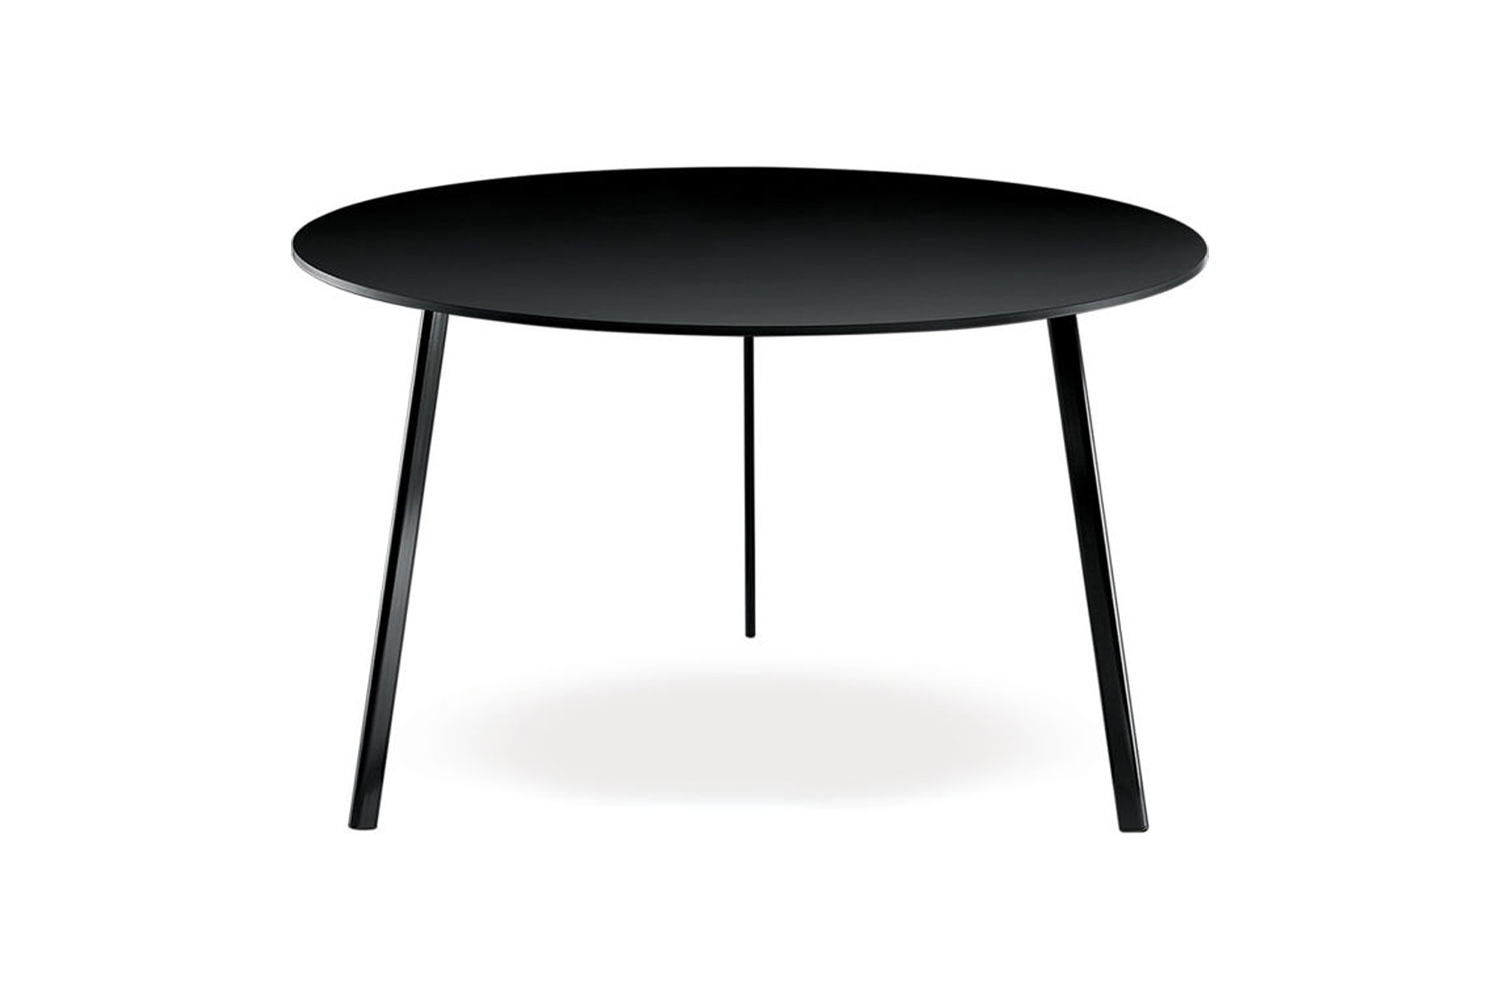 Designed by Ronan & Erwan Bouroullec, the Magis Striped Tavolo Round Table is $9 at Hive.